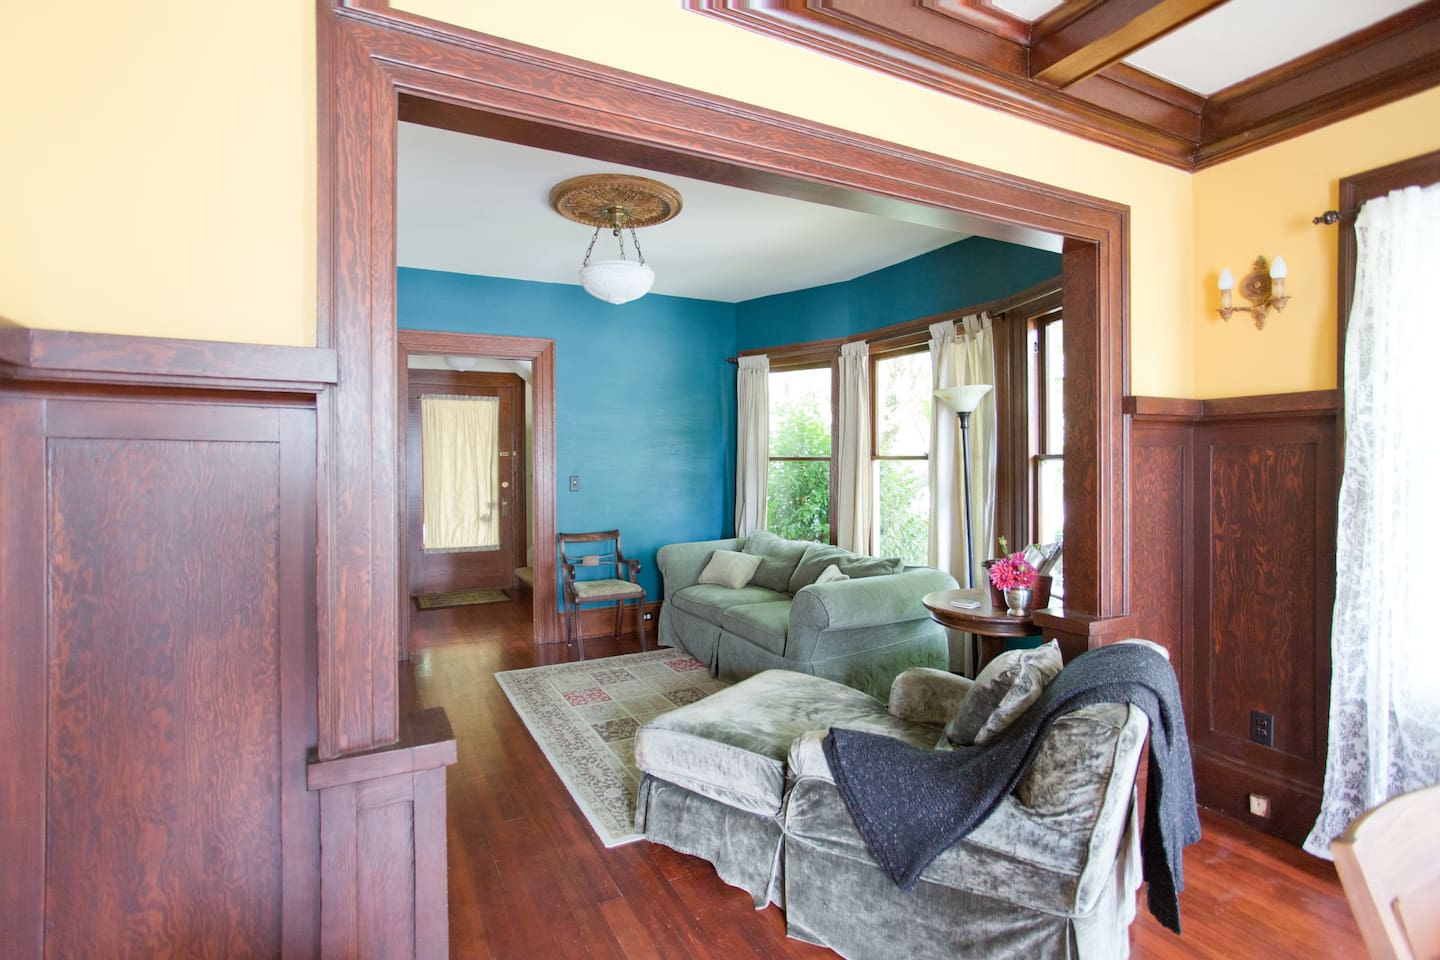 Living room sofa and chaise adjacent to the dining room.